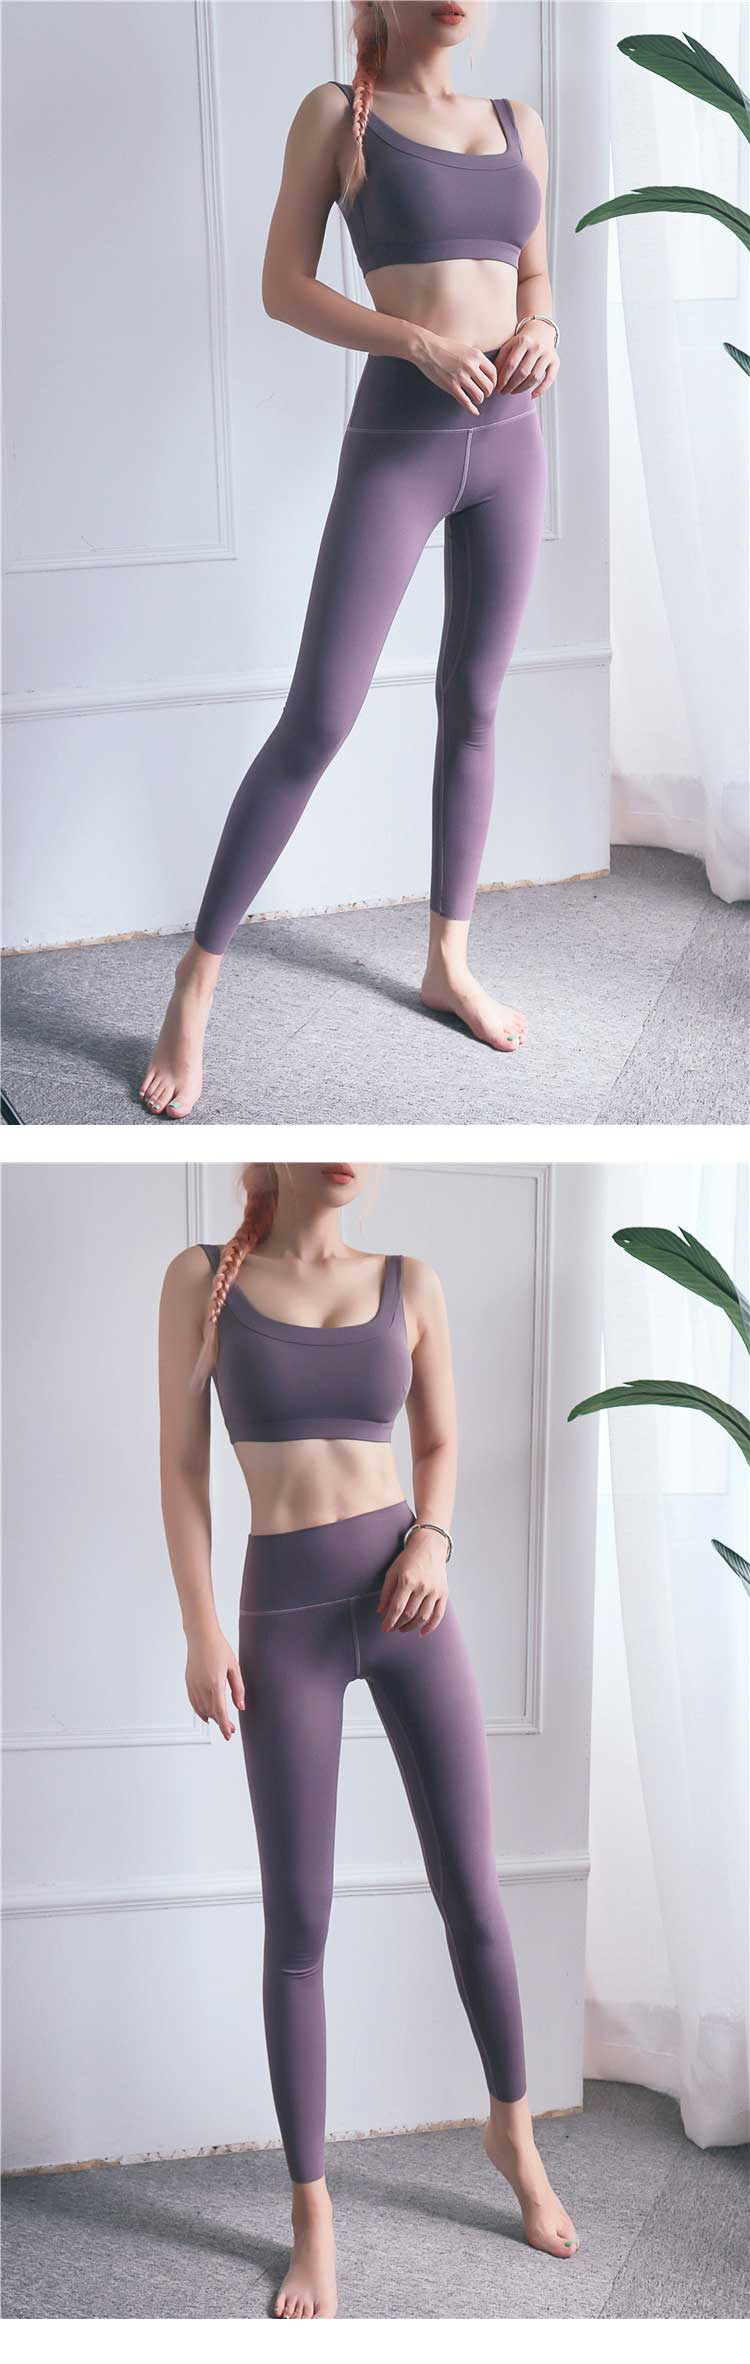 Choose-from-high-quality-ecological-fabric,-good-breathability